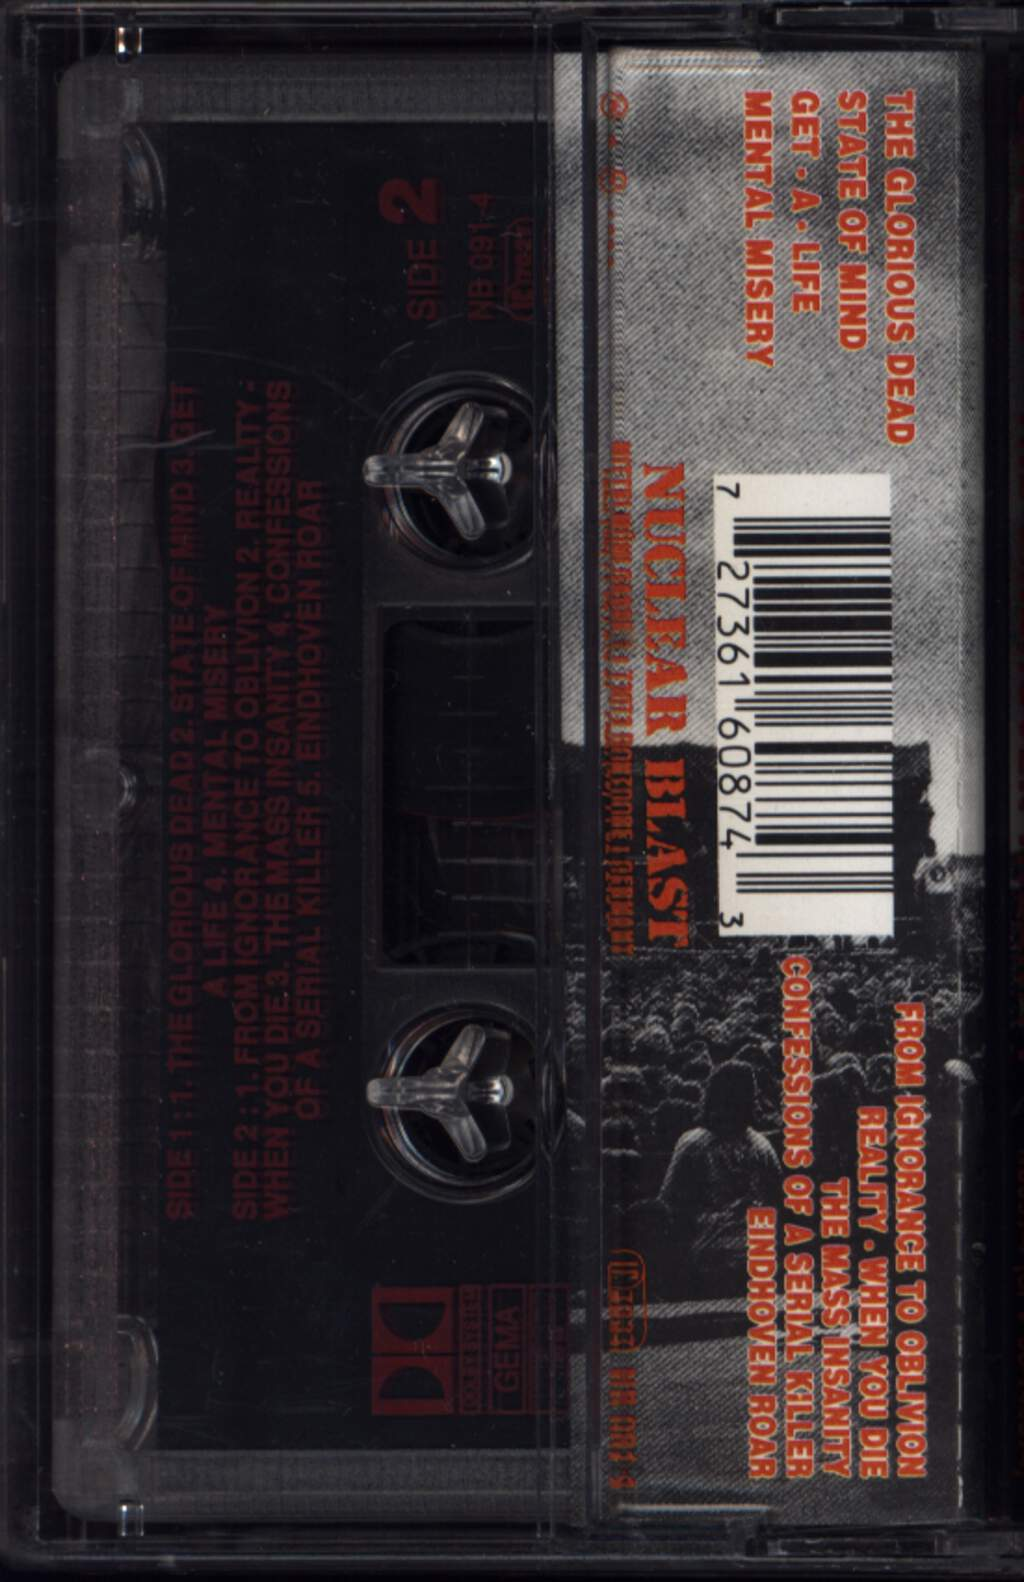 Gorefest: The Eindhoven Insanity, Compact Cassette